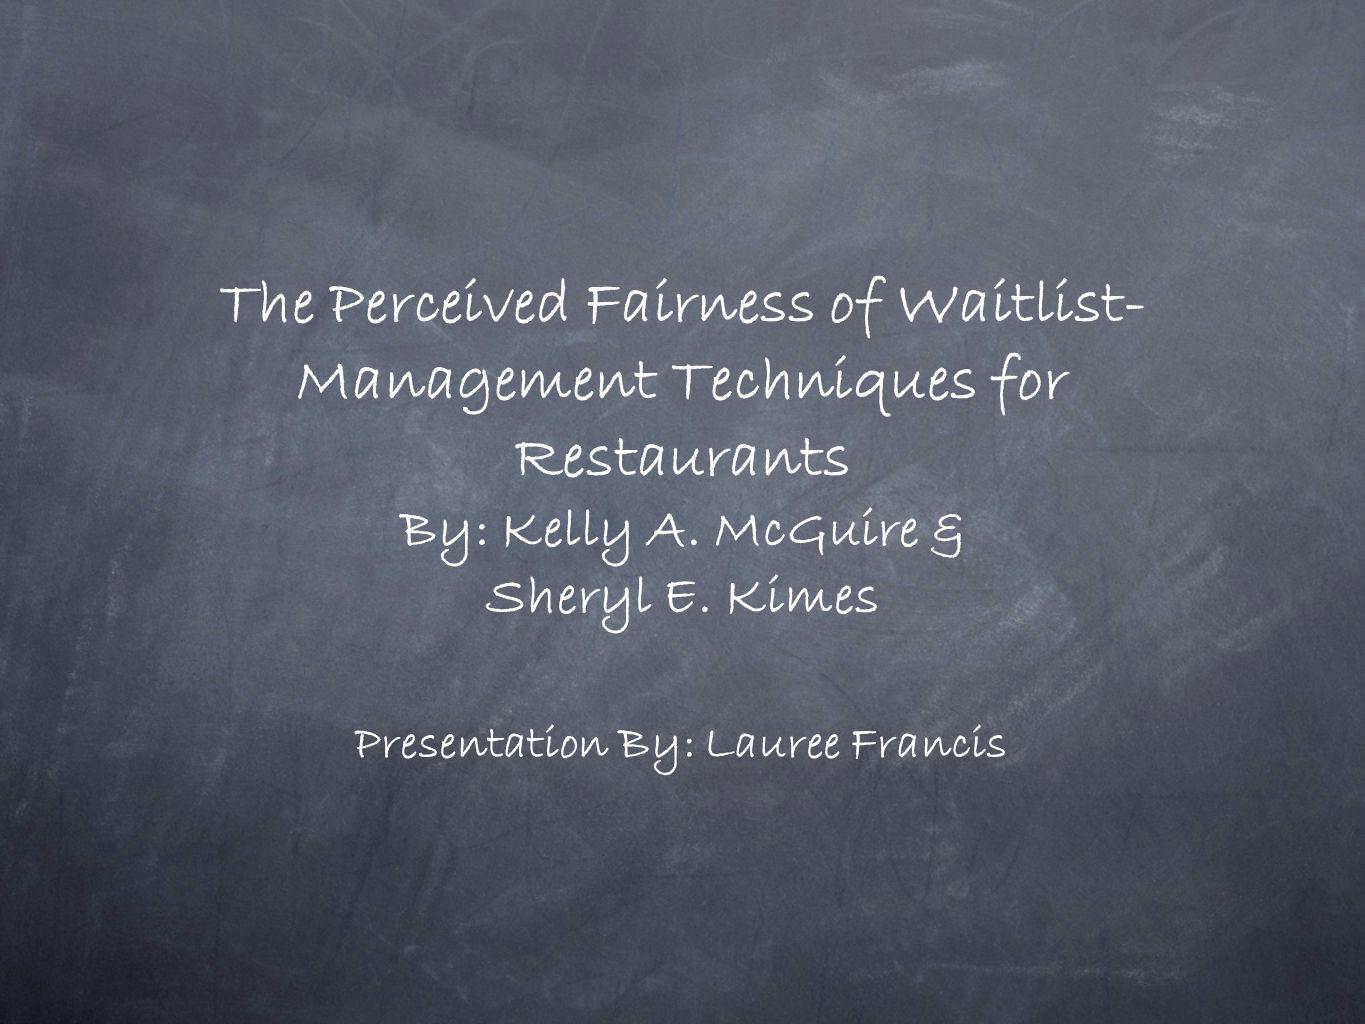 The Perceived Fairness of Waitlist- Management Techniques for Restaurants By: Kelly A. McGuire & Sheryl E. Kimes Presentation By: Lauree Francis